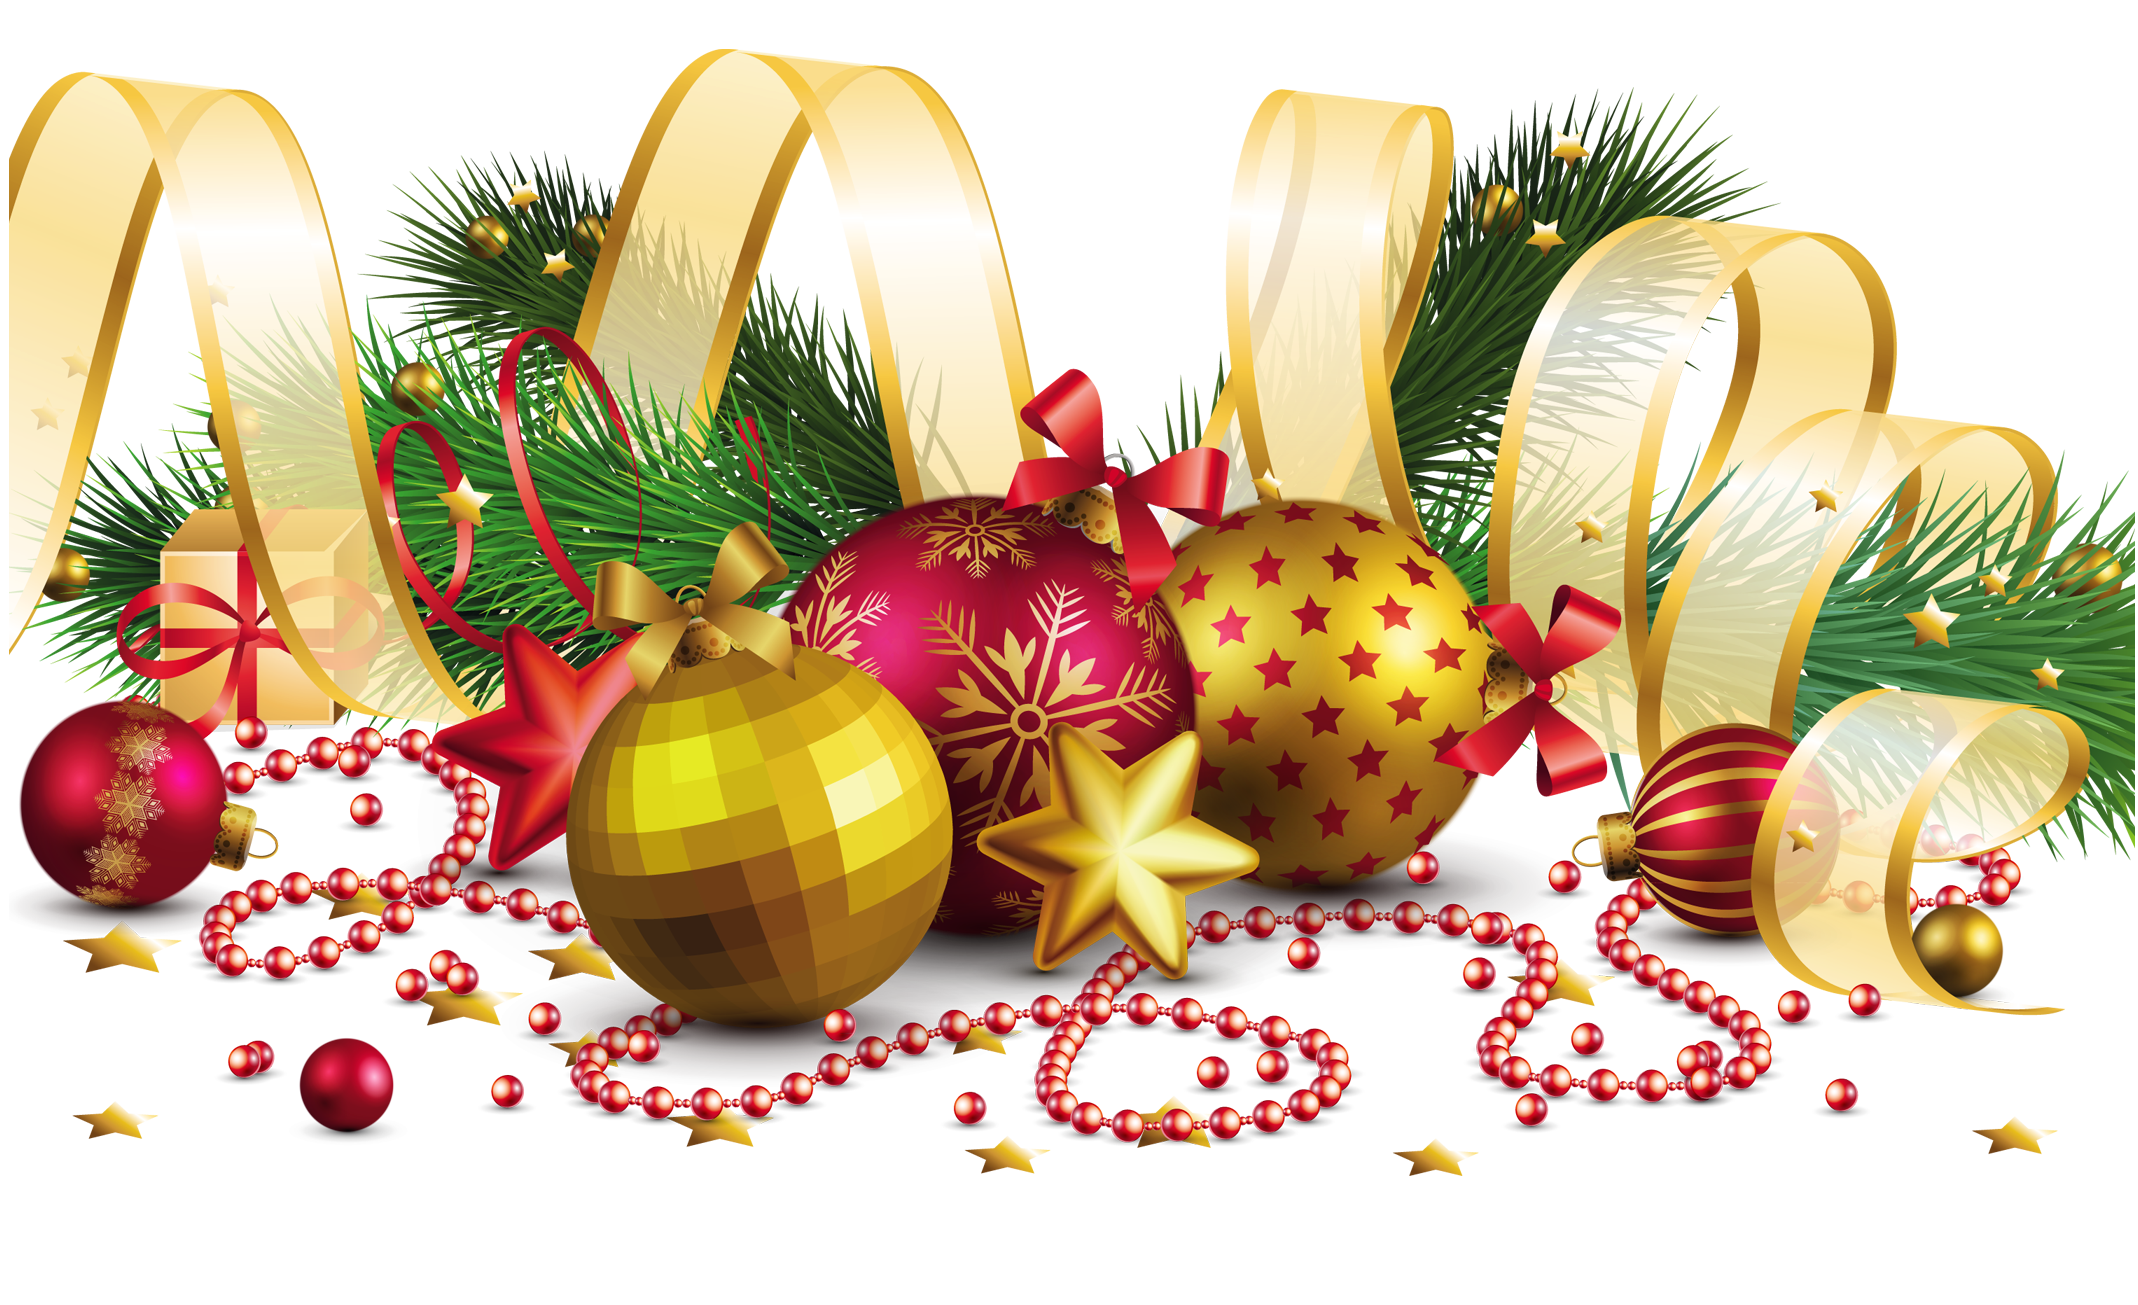 Ornaments christmas png. Transparent images bow background